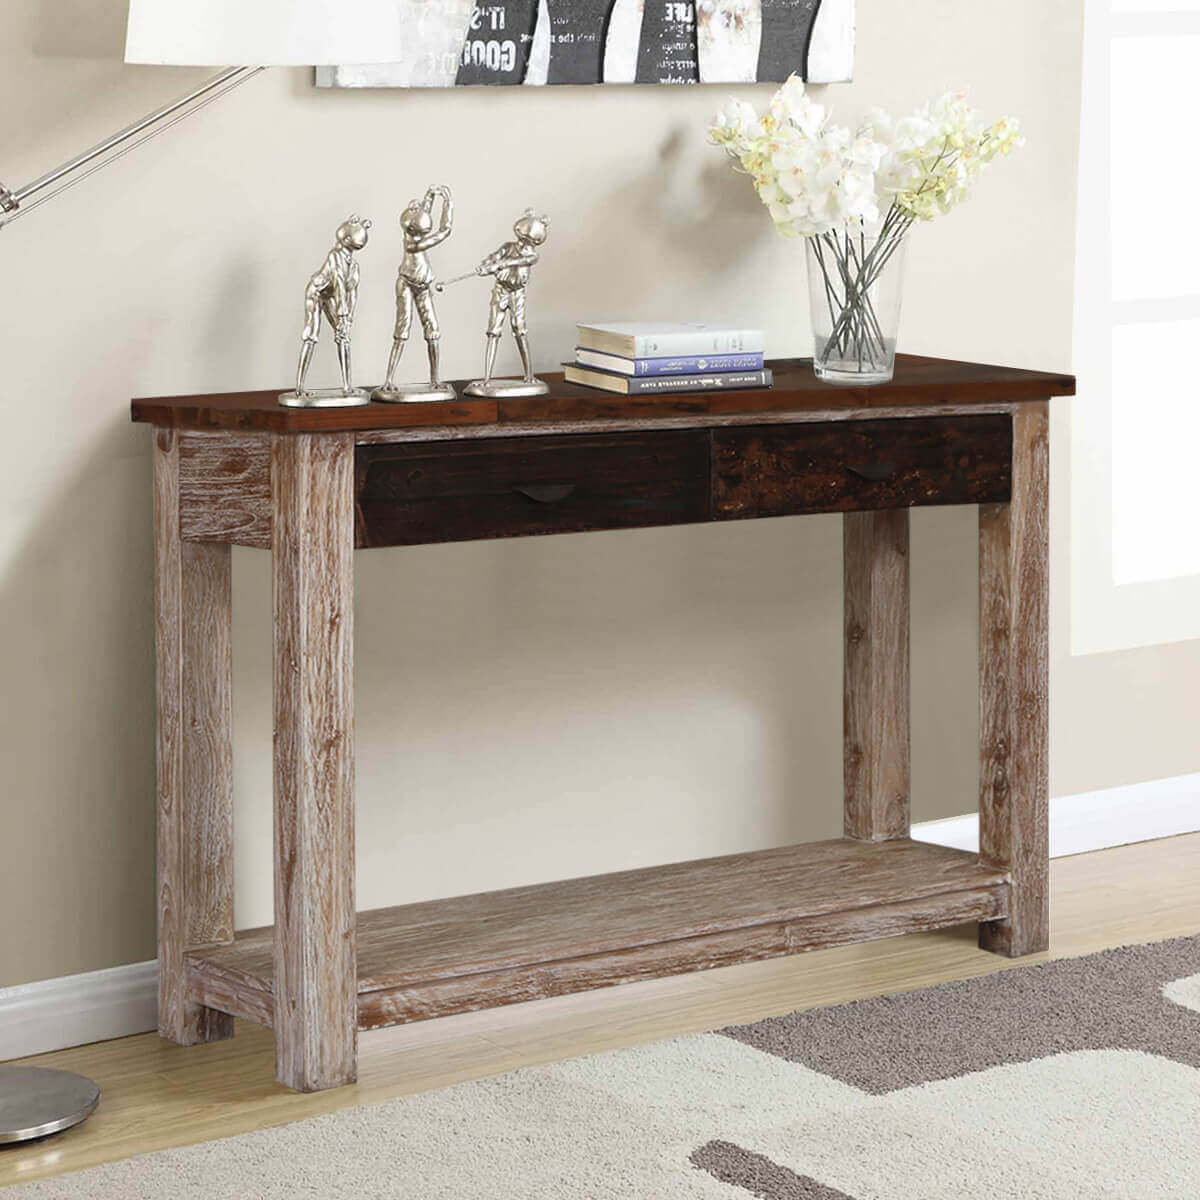 Foyer Console Questions : Santino rugged reclaimed wood drawer entryway console table